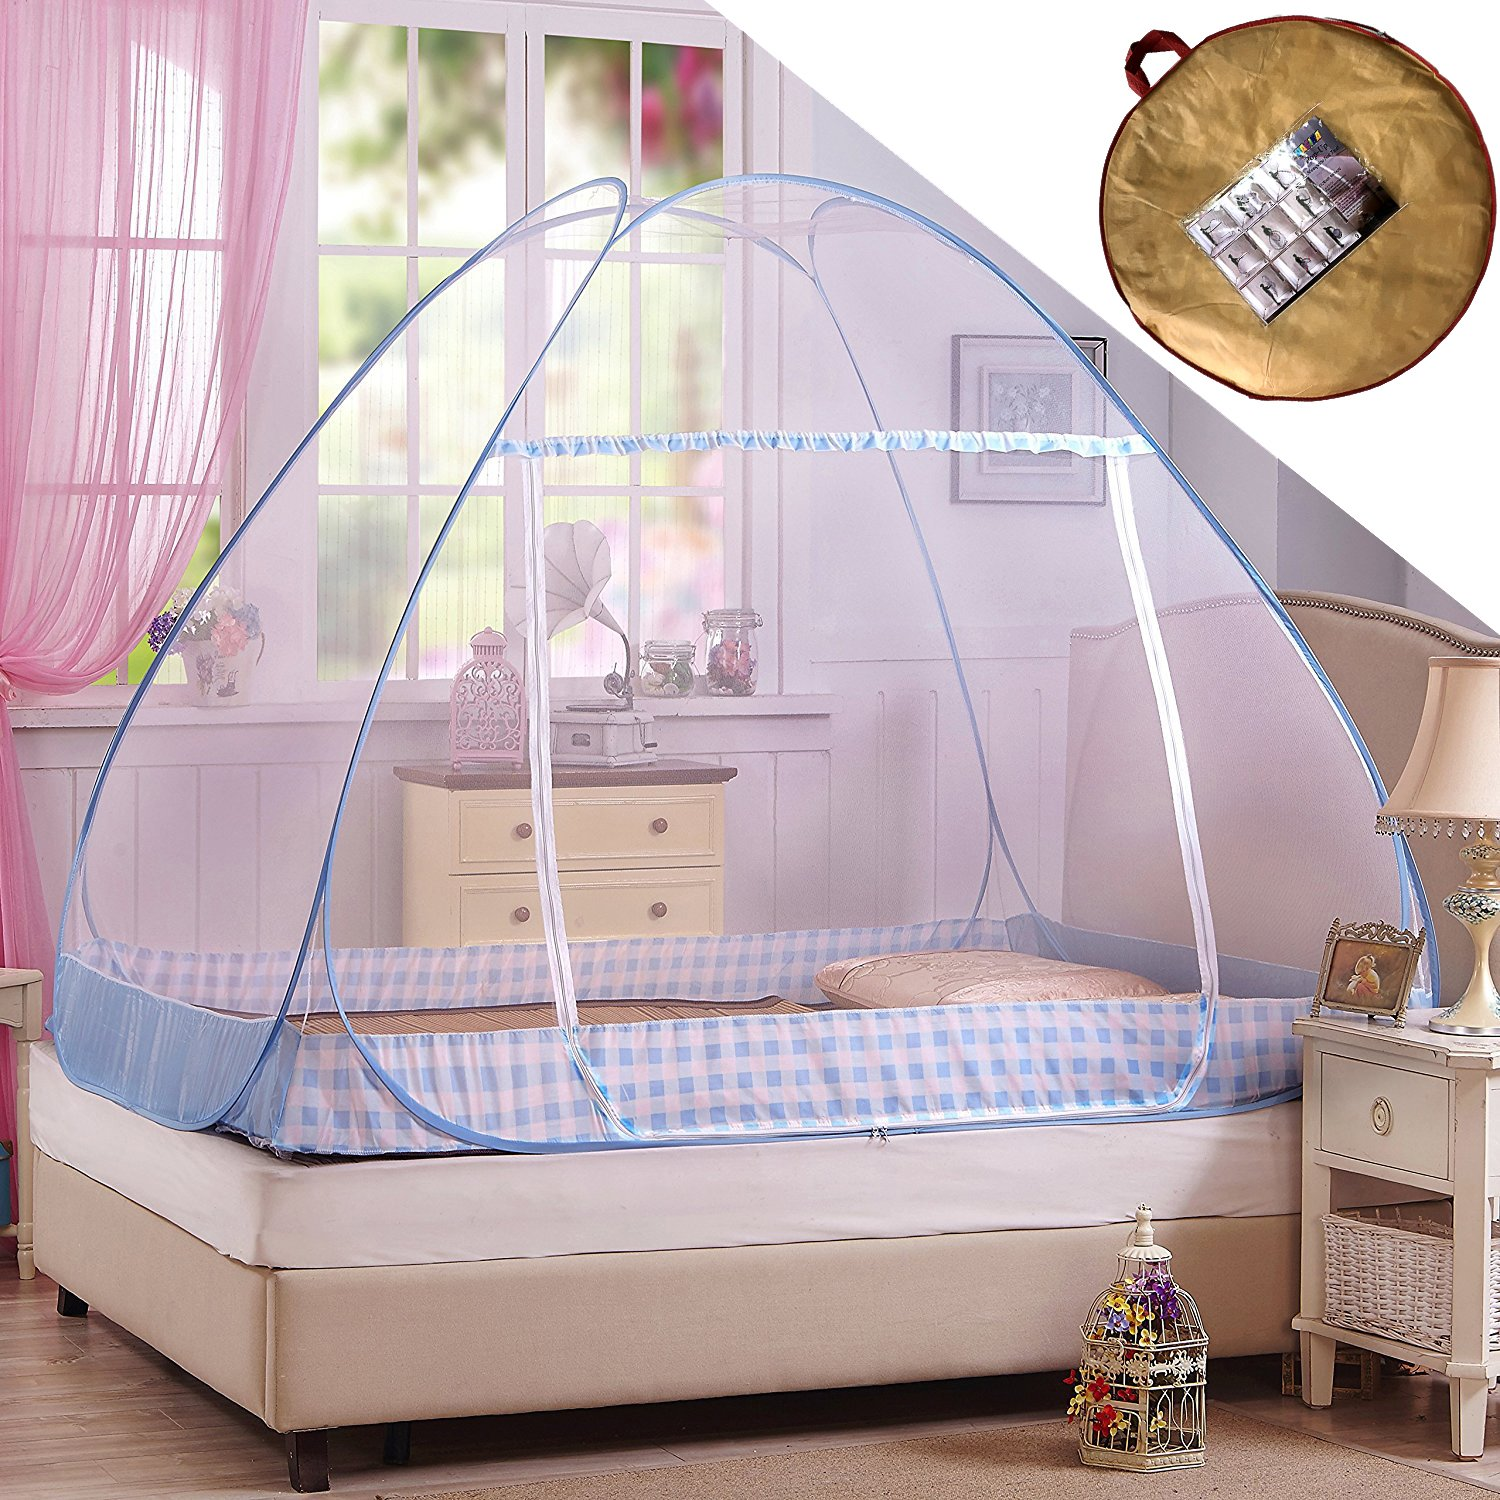 Hasika Pop-Up Mosquito/Folding Mosquito Net Tent Canopy Curtains for Beds Anti Mosquito Bites Folding Design with net Bottom for Babys Adults Trip(71 x 79 x 61 inches)